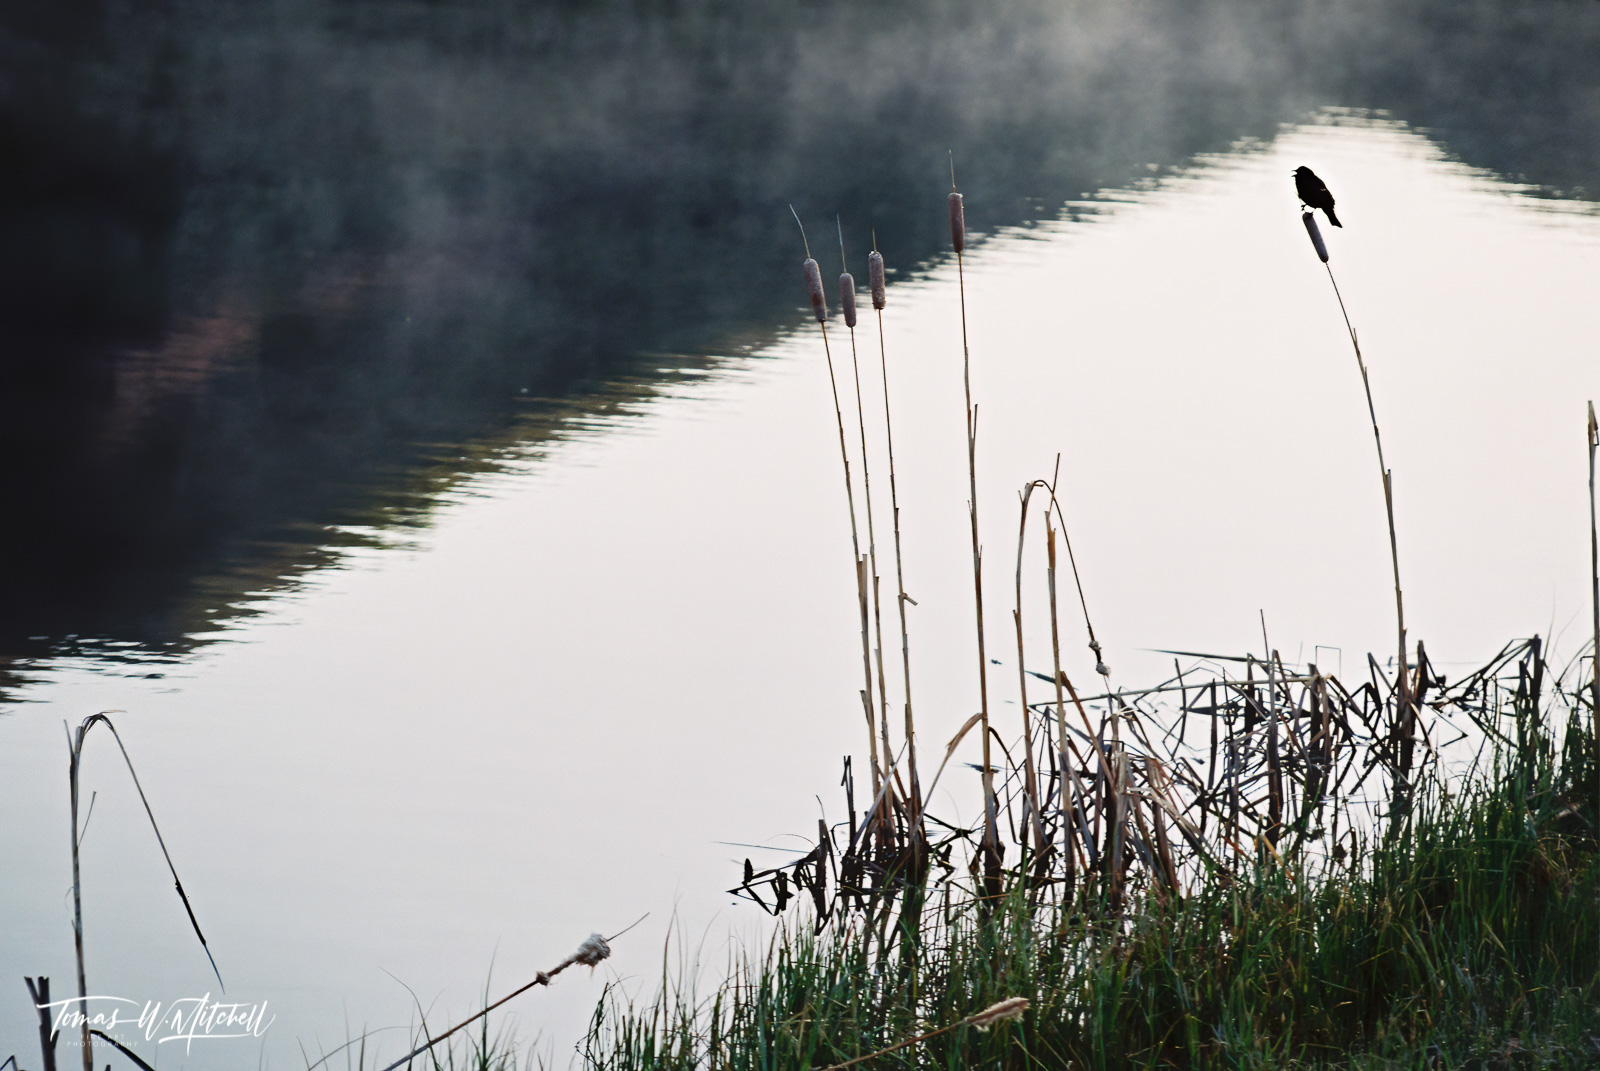 limited edition, fine art, prints, photograph, film, blackbird, morning, pond, mountain, reflection, water, bird, cattails, mist, photo